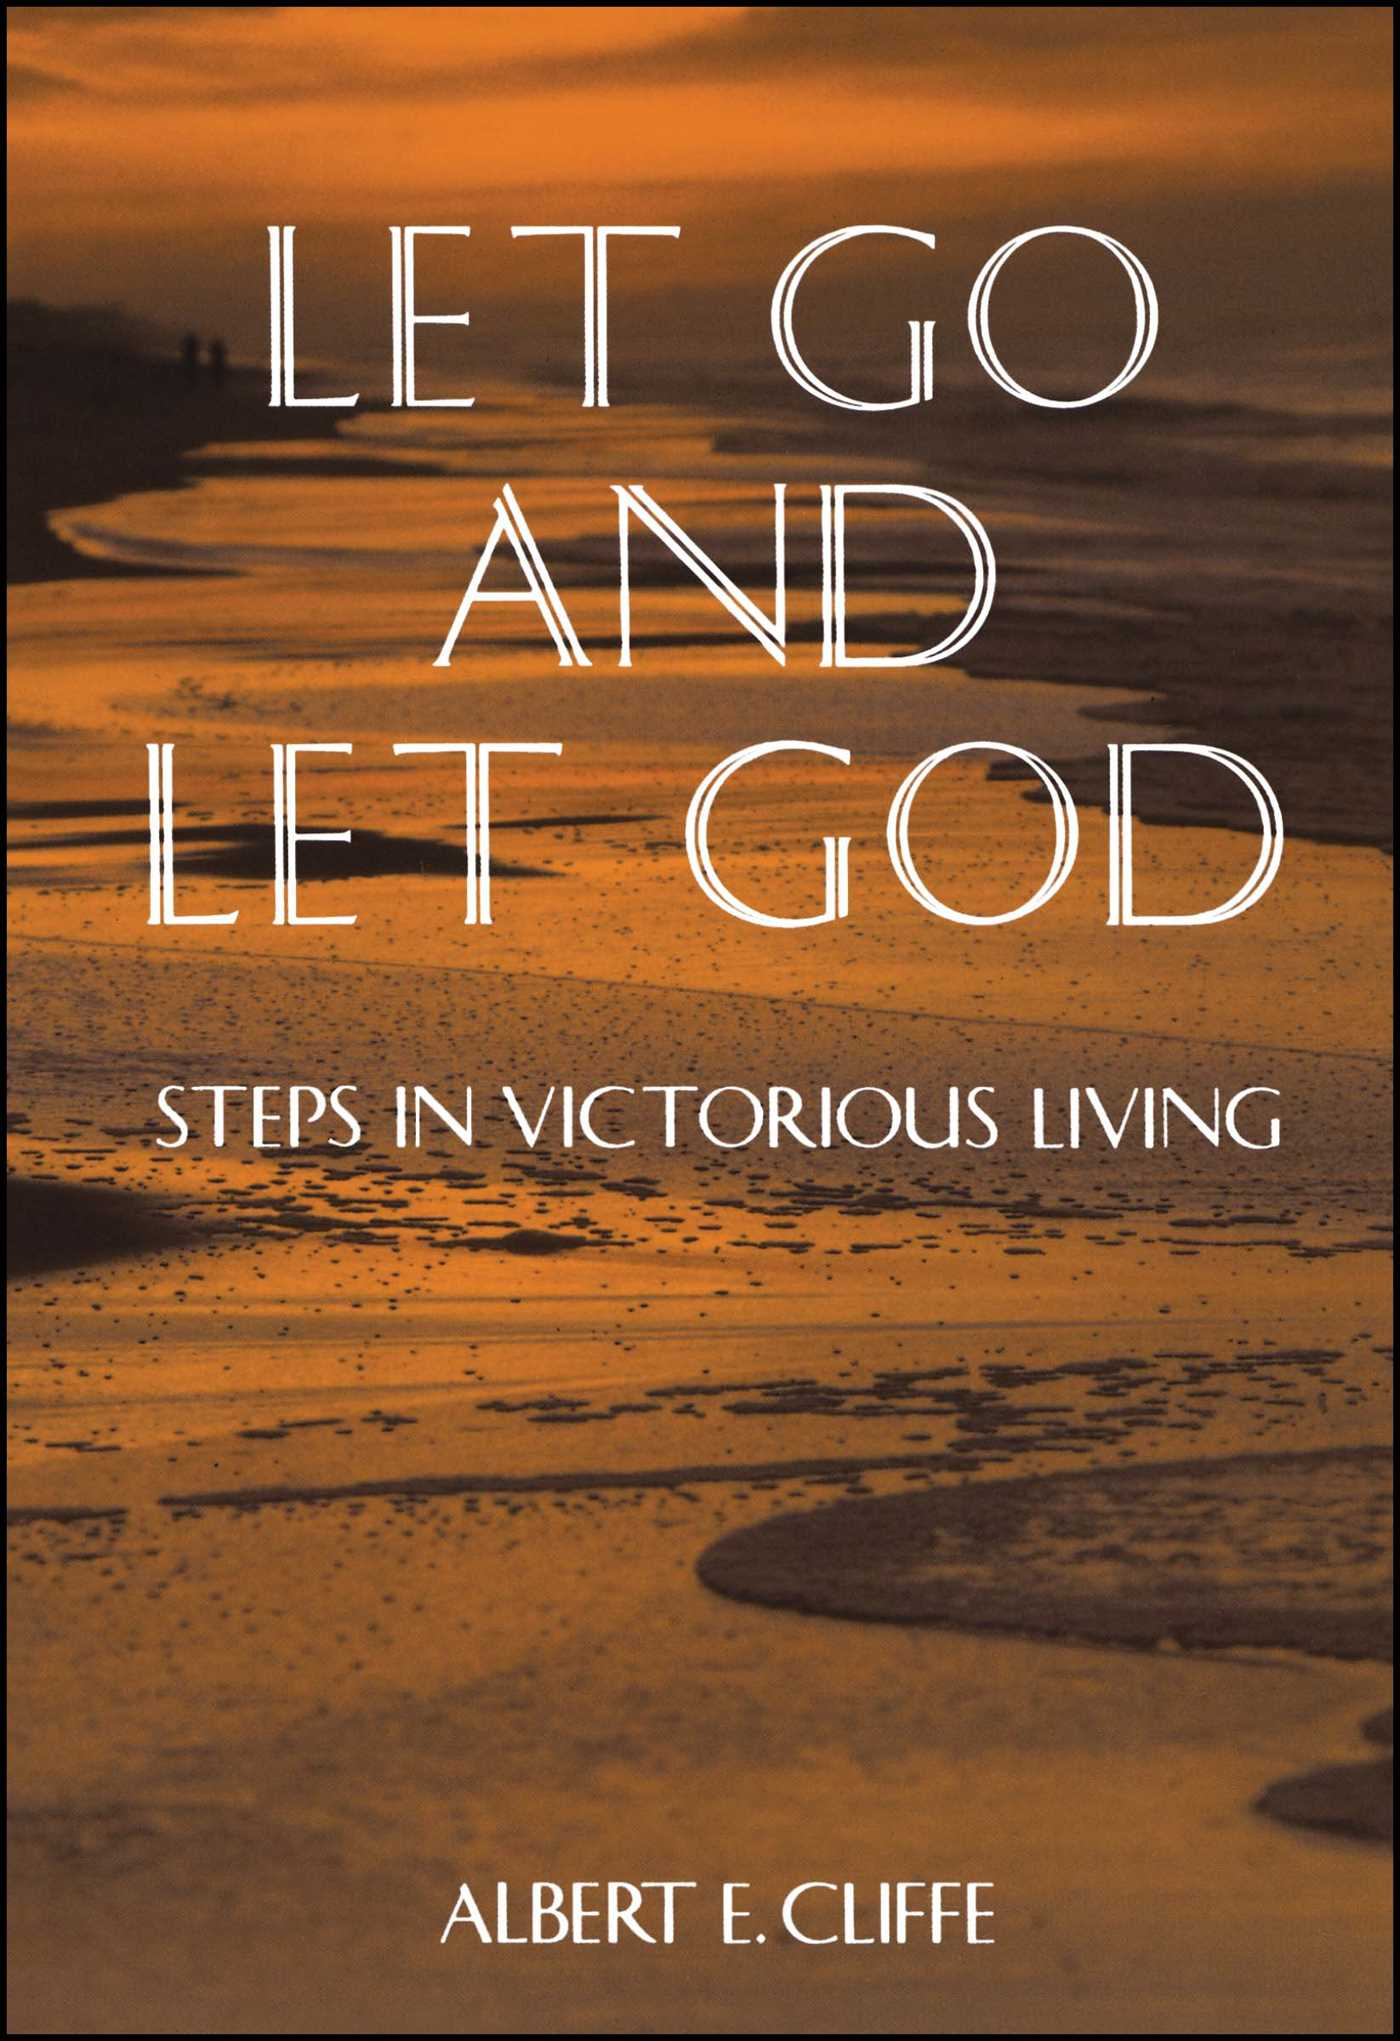 Let-go-and-let-god-9780671763961_hr